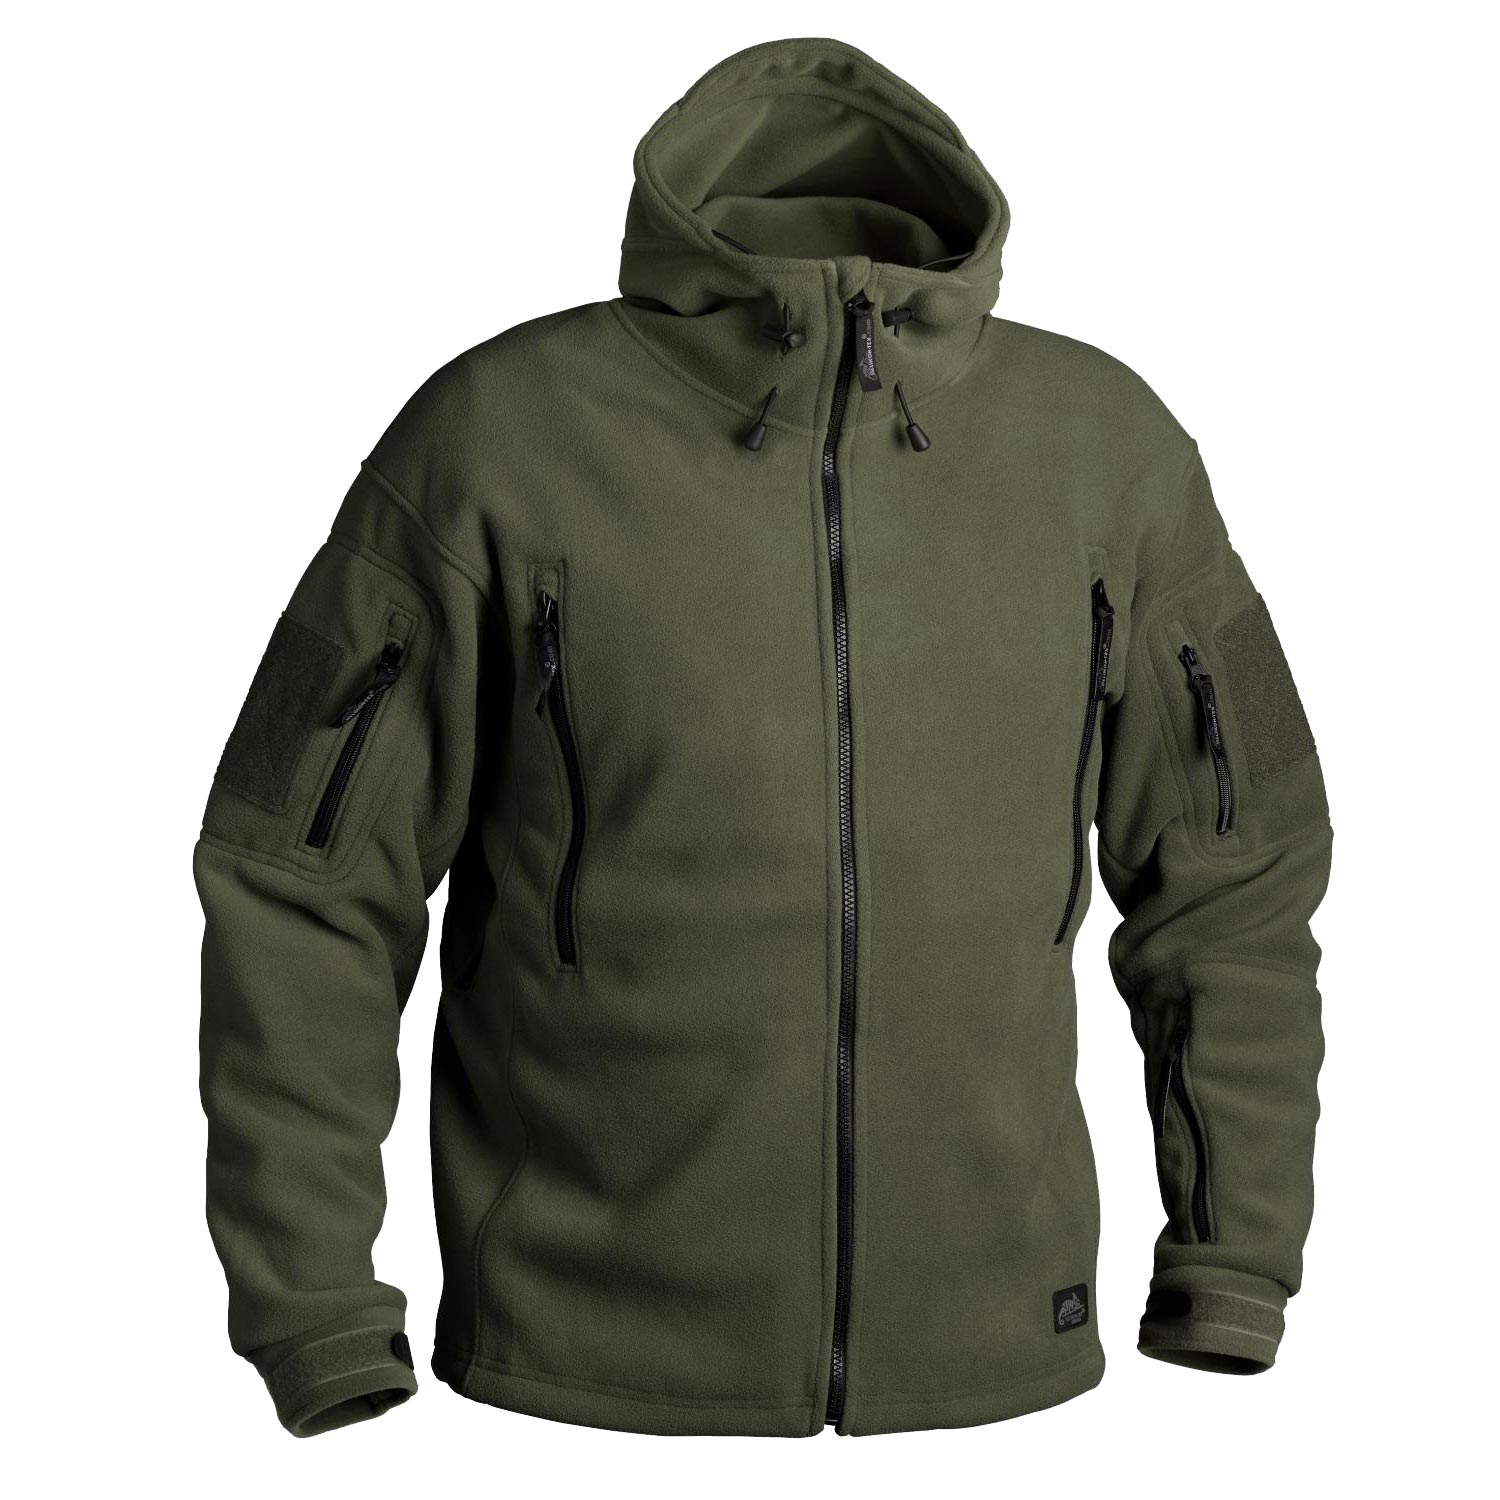 Bunda HELIKON PATRIOT Heavy fleece ZELENÁ